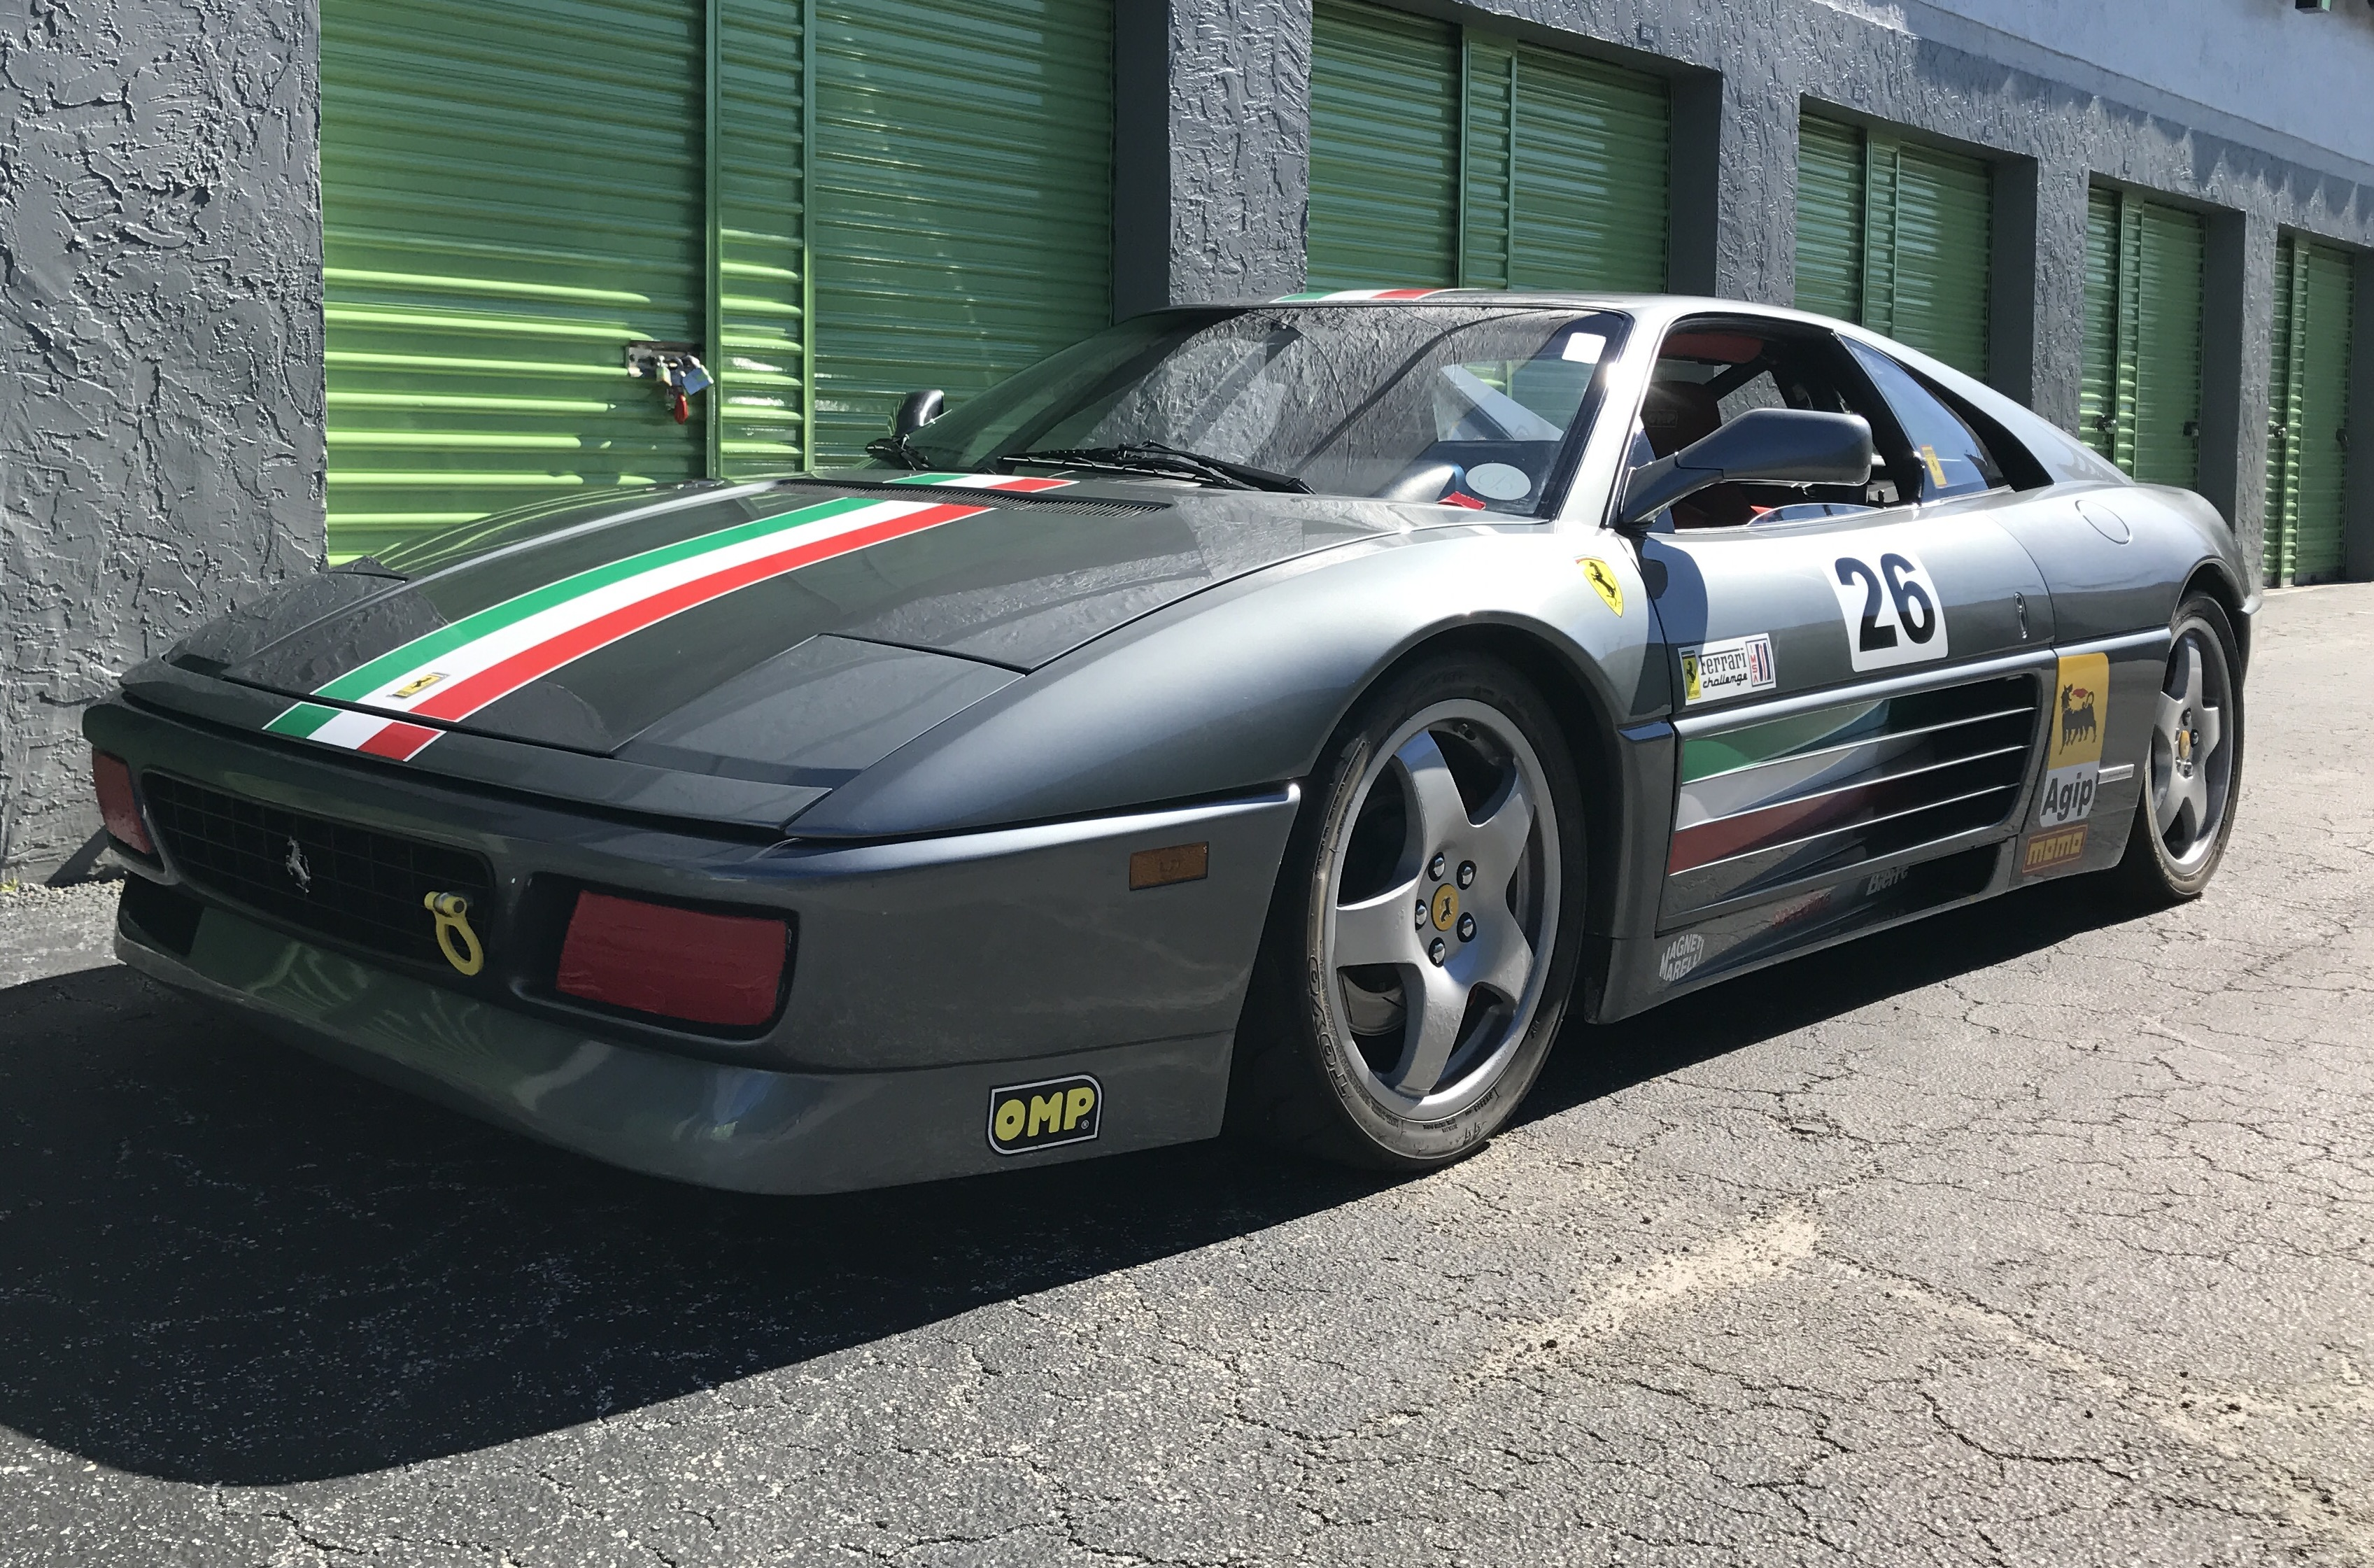 unloaded testarossa sale be for ferrari sublime used can choice investment a being smart